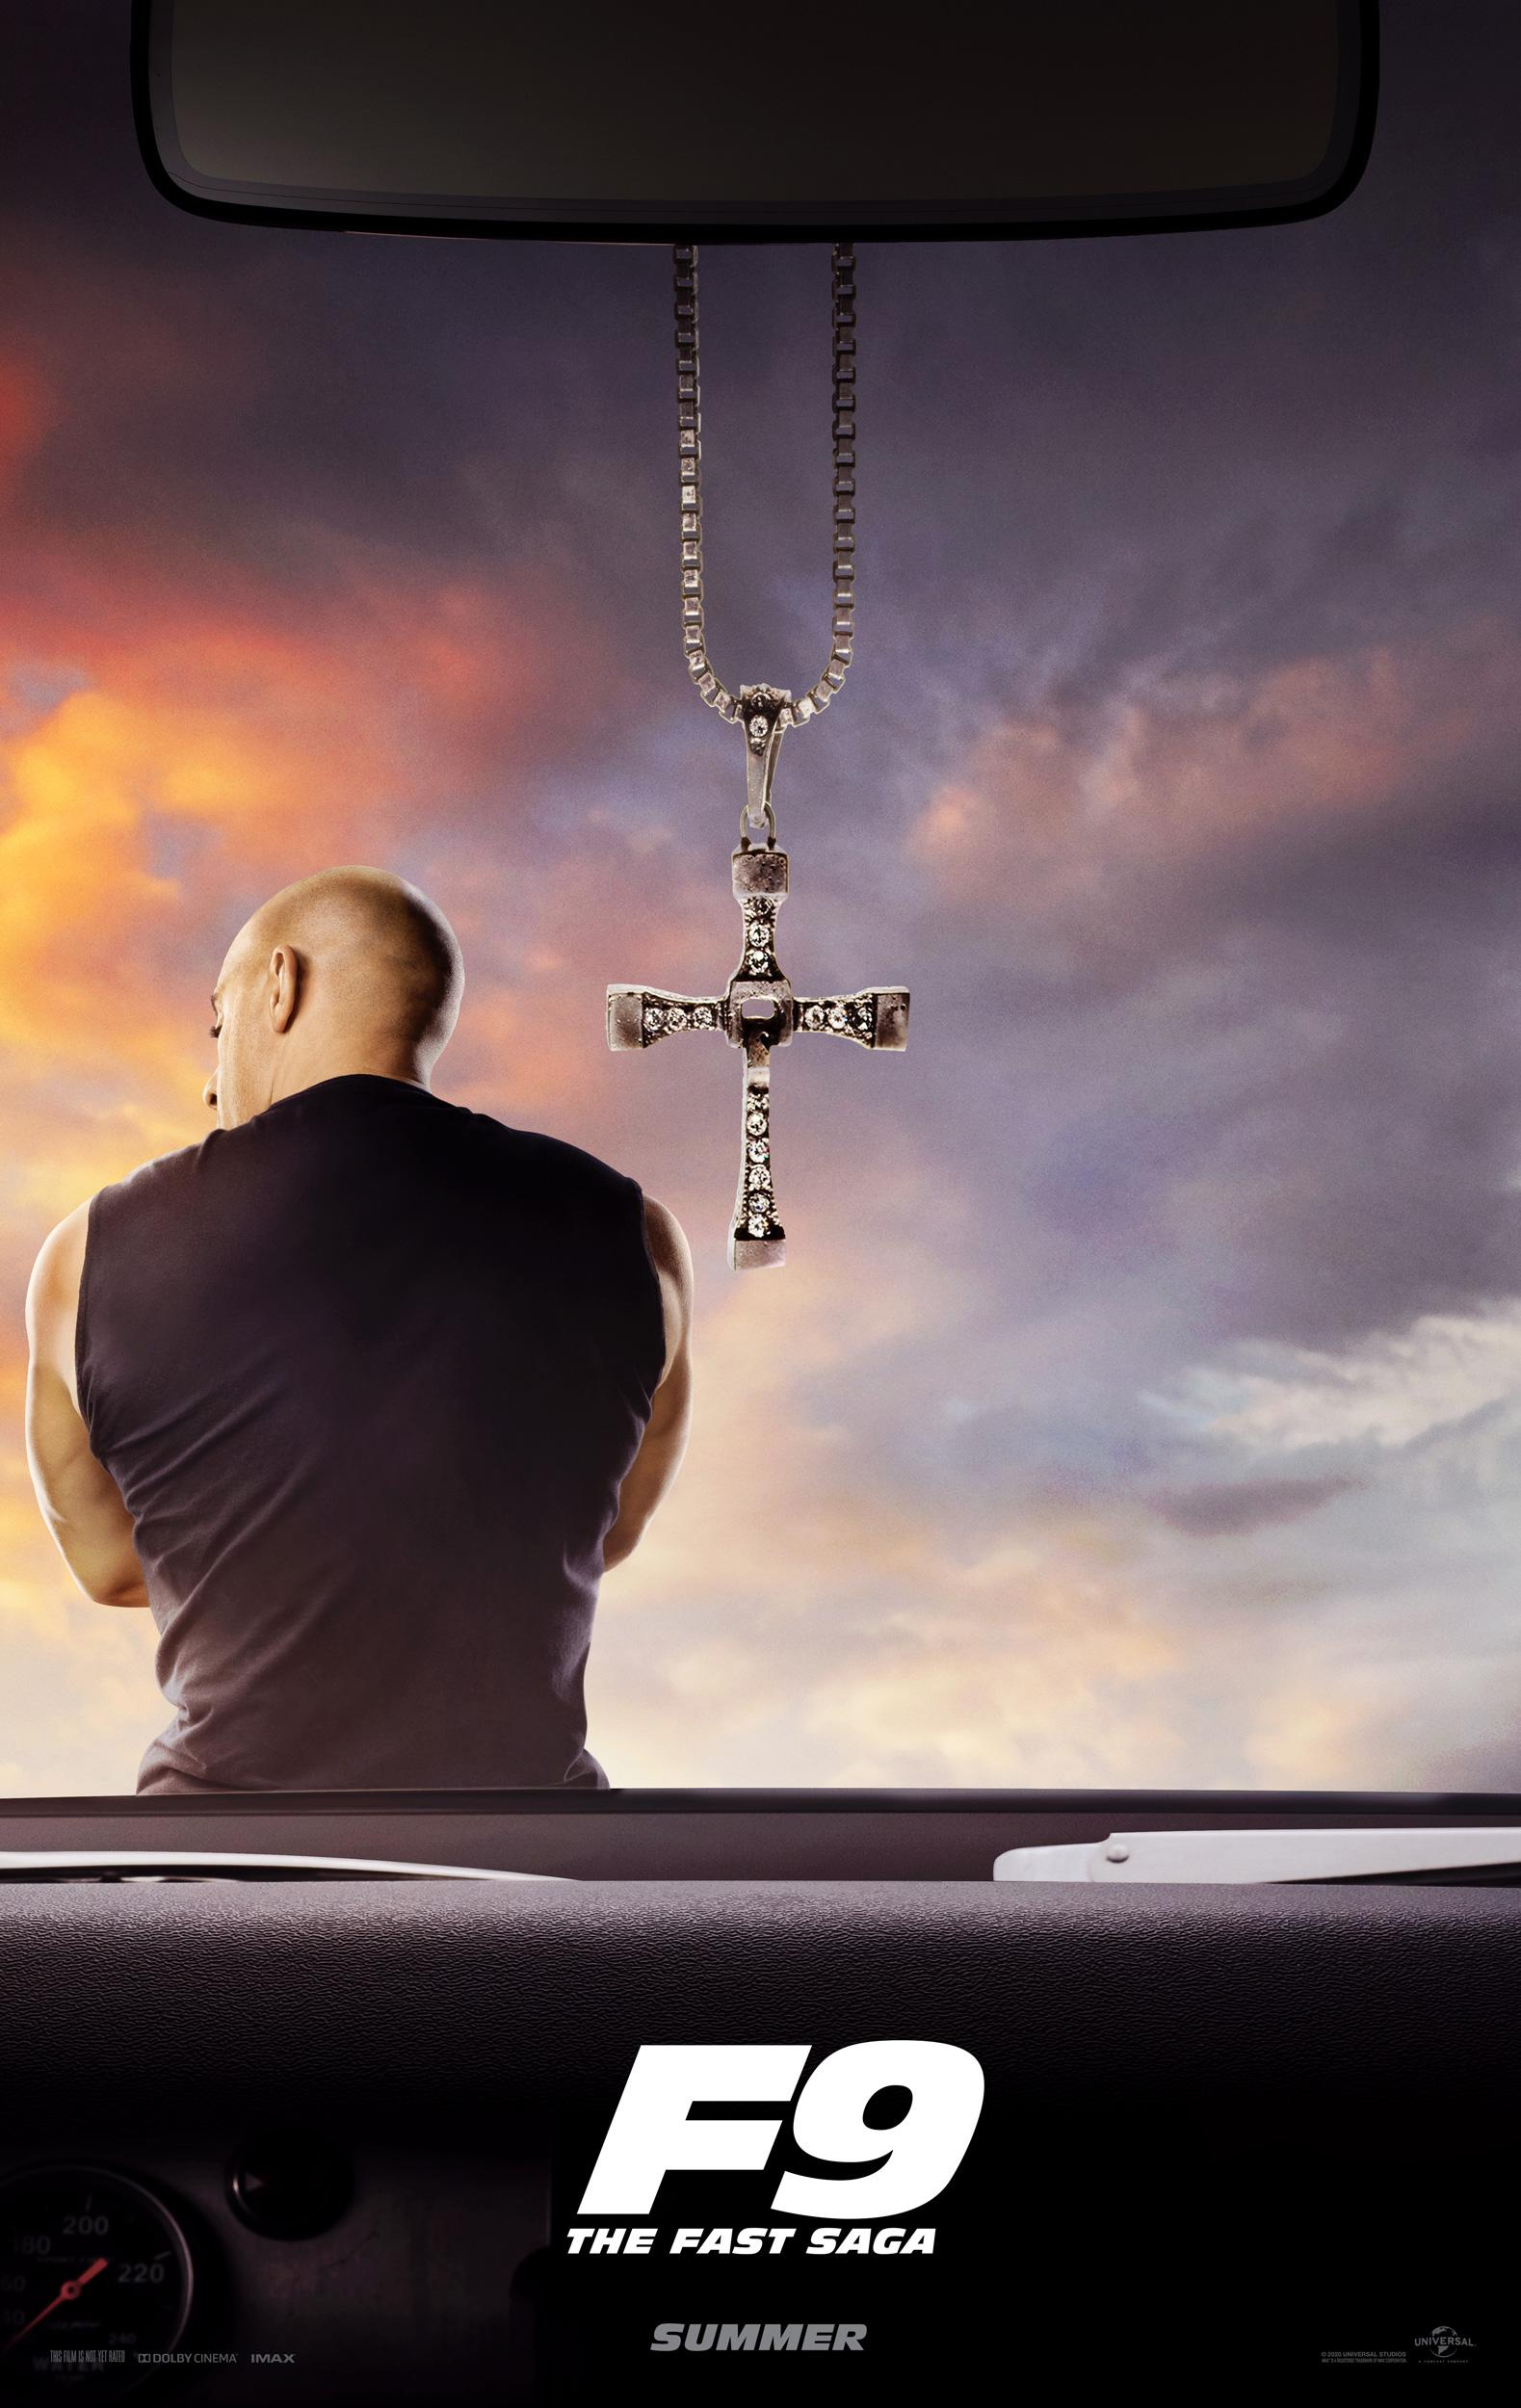 The first poster for 'Fast & Furious 9' promises an action-packed ninth installment in the 'Fast' saga (Photo: Universal)